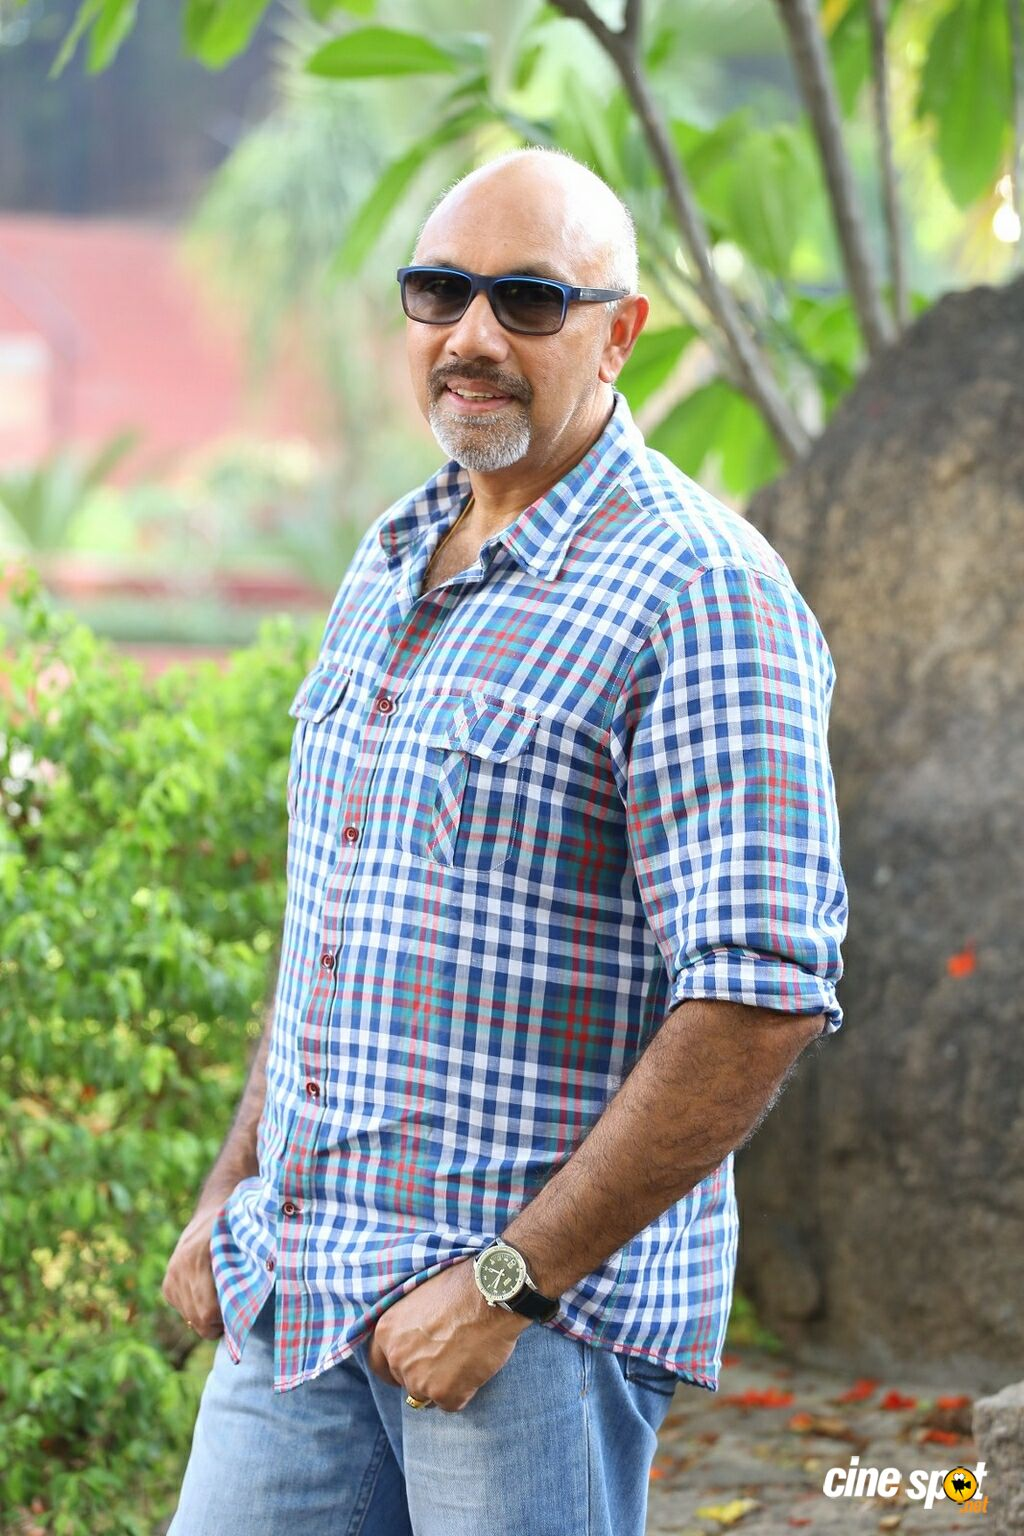 sathyaraj tamil moviesathyaraj movies, sathyaraj meaning, sathyaraj meena movies, sathyaraj movie list, sathyaraj top 10 movies, sathyaraj hits, sathyaraj daughter, sathyaraj in bahubali, sathyaraj actor, sathyaraj son, sathyaraj height, sathyaraj family, sathyaraj movies full tamil, sathyaraj hits starmusiq, sathyaraj in chennai express, sathyaraj bgm in poojai, sathyaraj theme music in poojai, sathyaraj wiki, sathyaraj movies free download, sathyaraj tamil movie